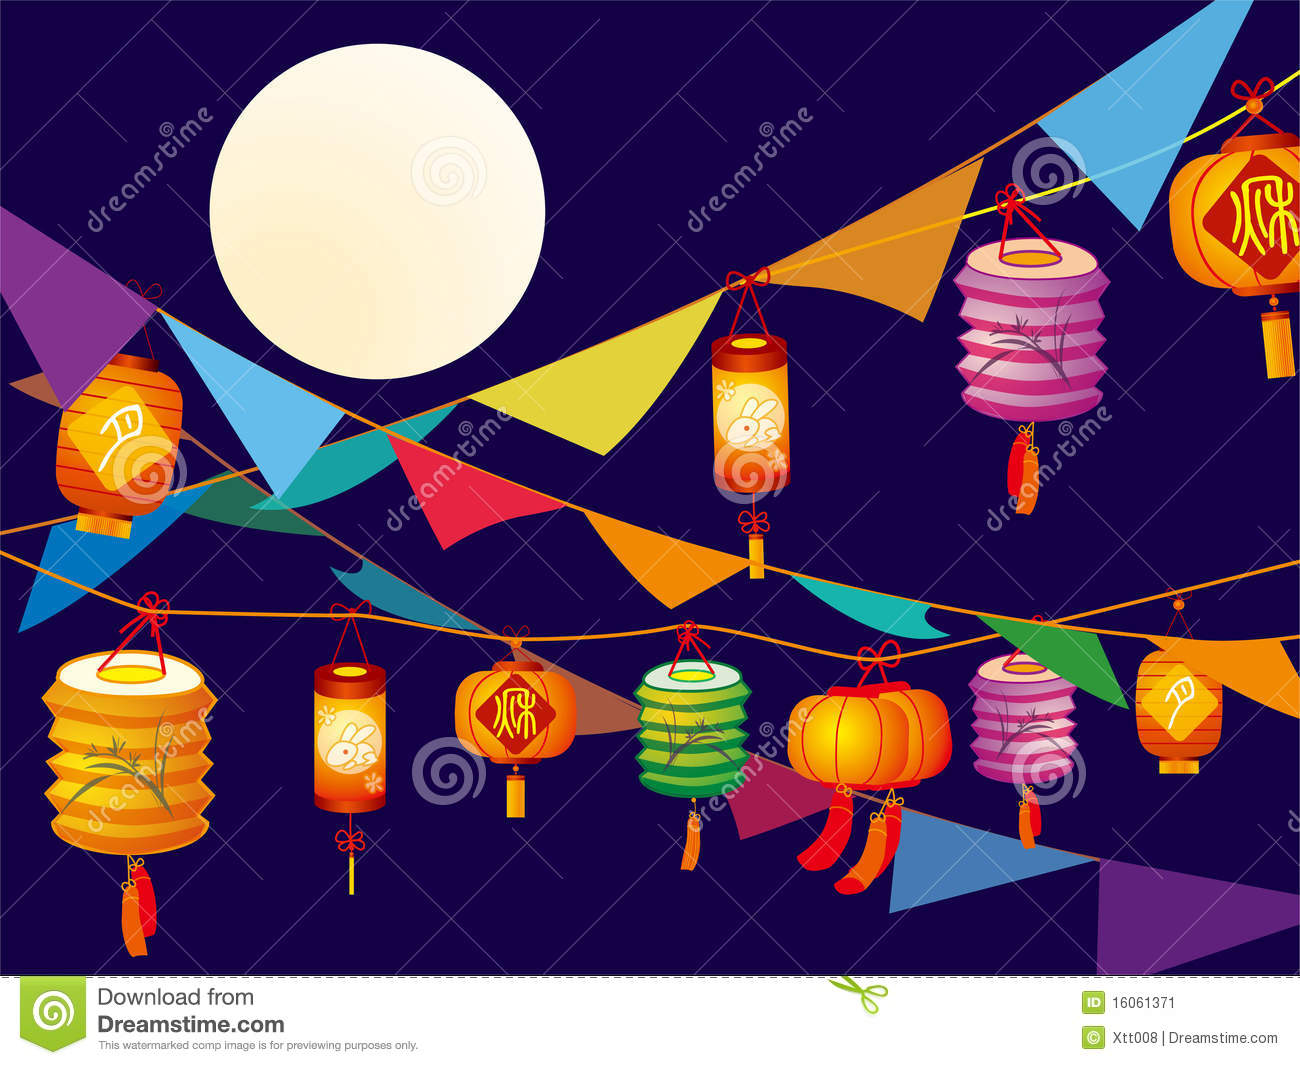 Download Lanterns stock vector. Illustration of card, sweet, bright - 16061371